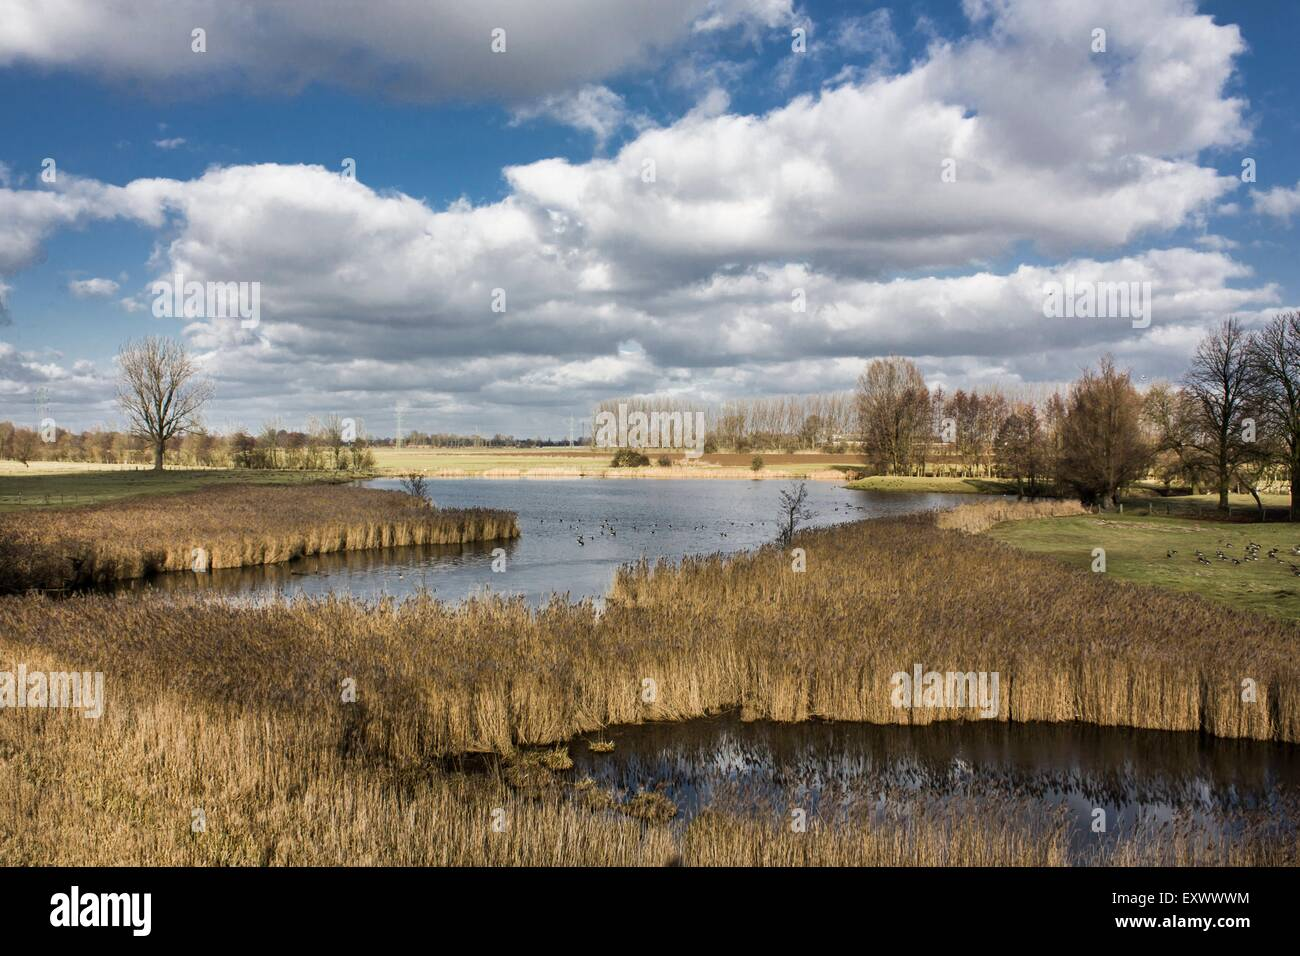 Lake with reeds in Lower Rhine region, Germany - Stock Image